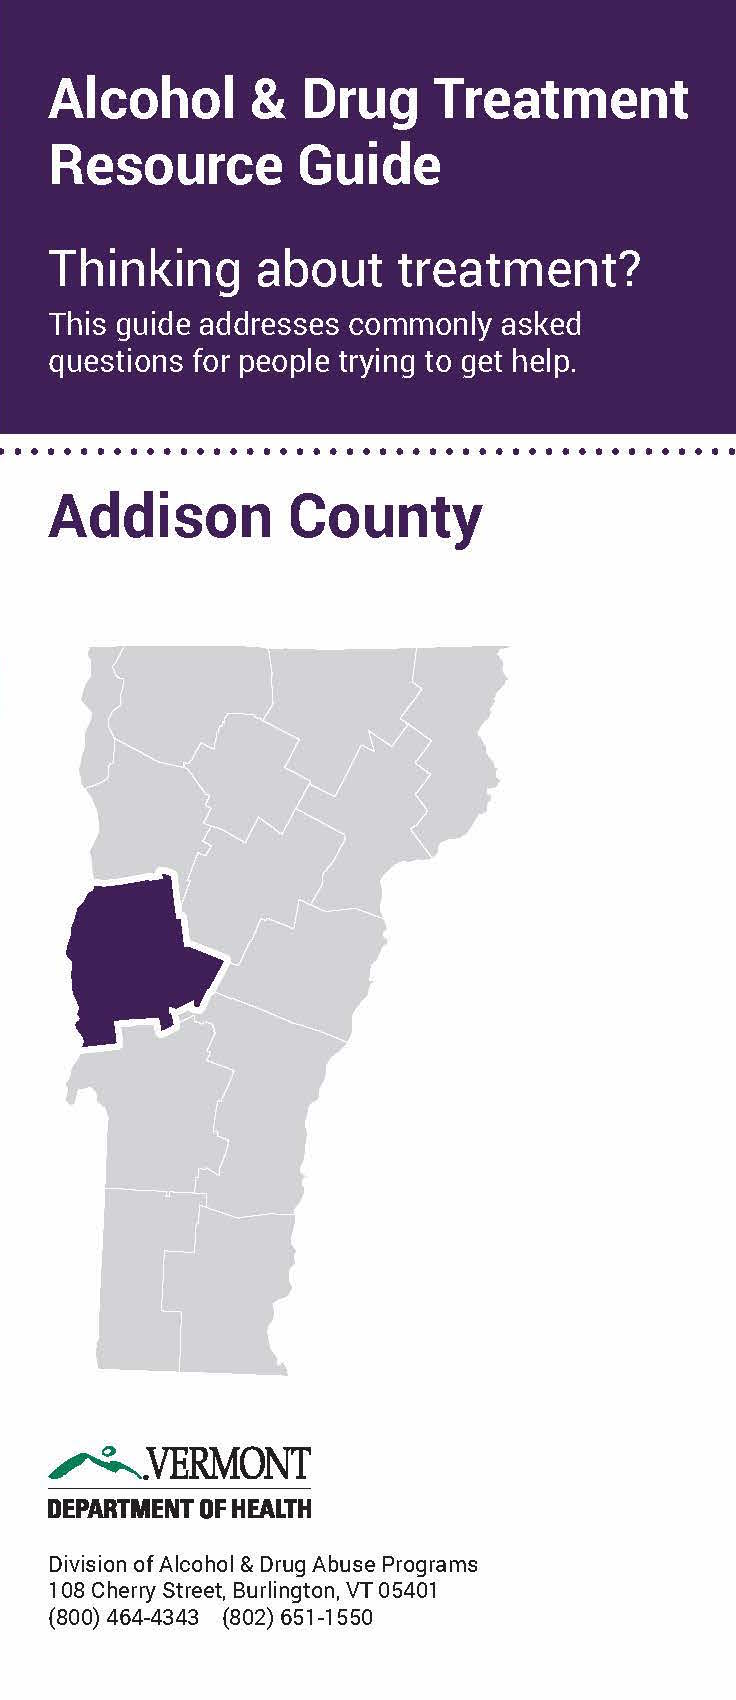 Addison County